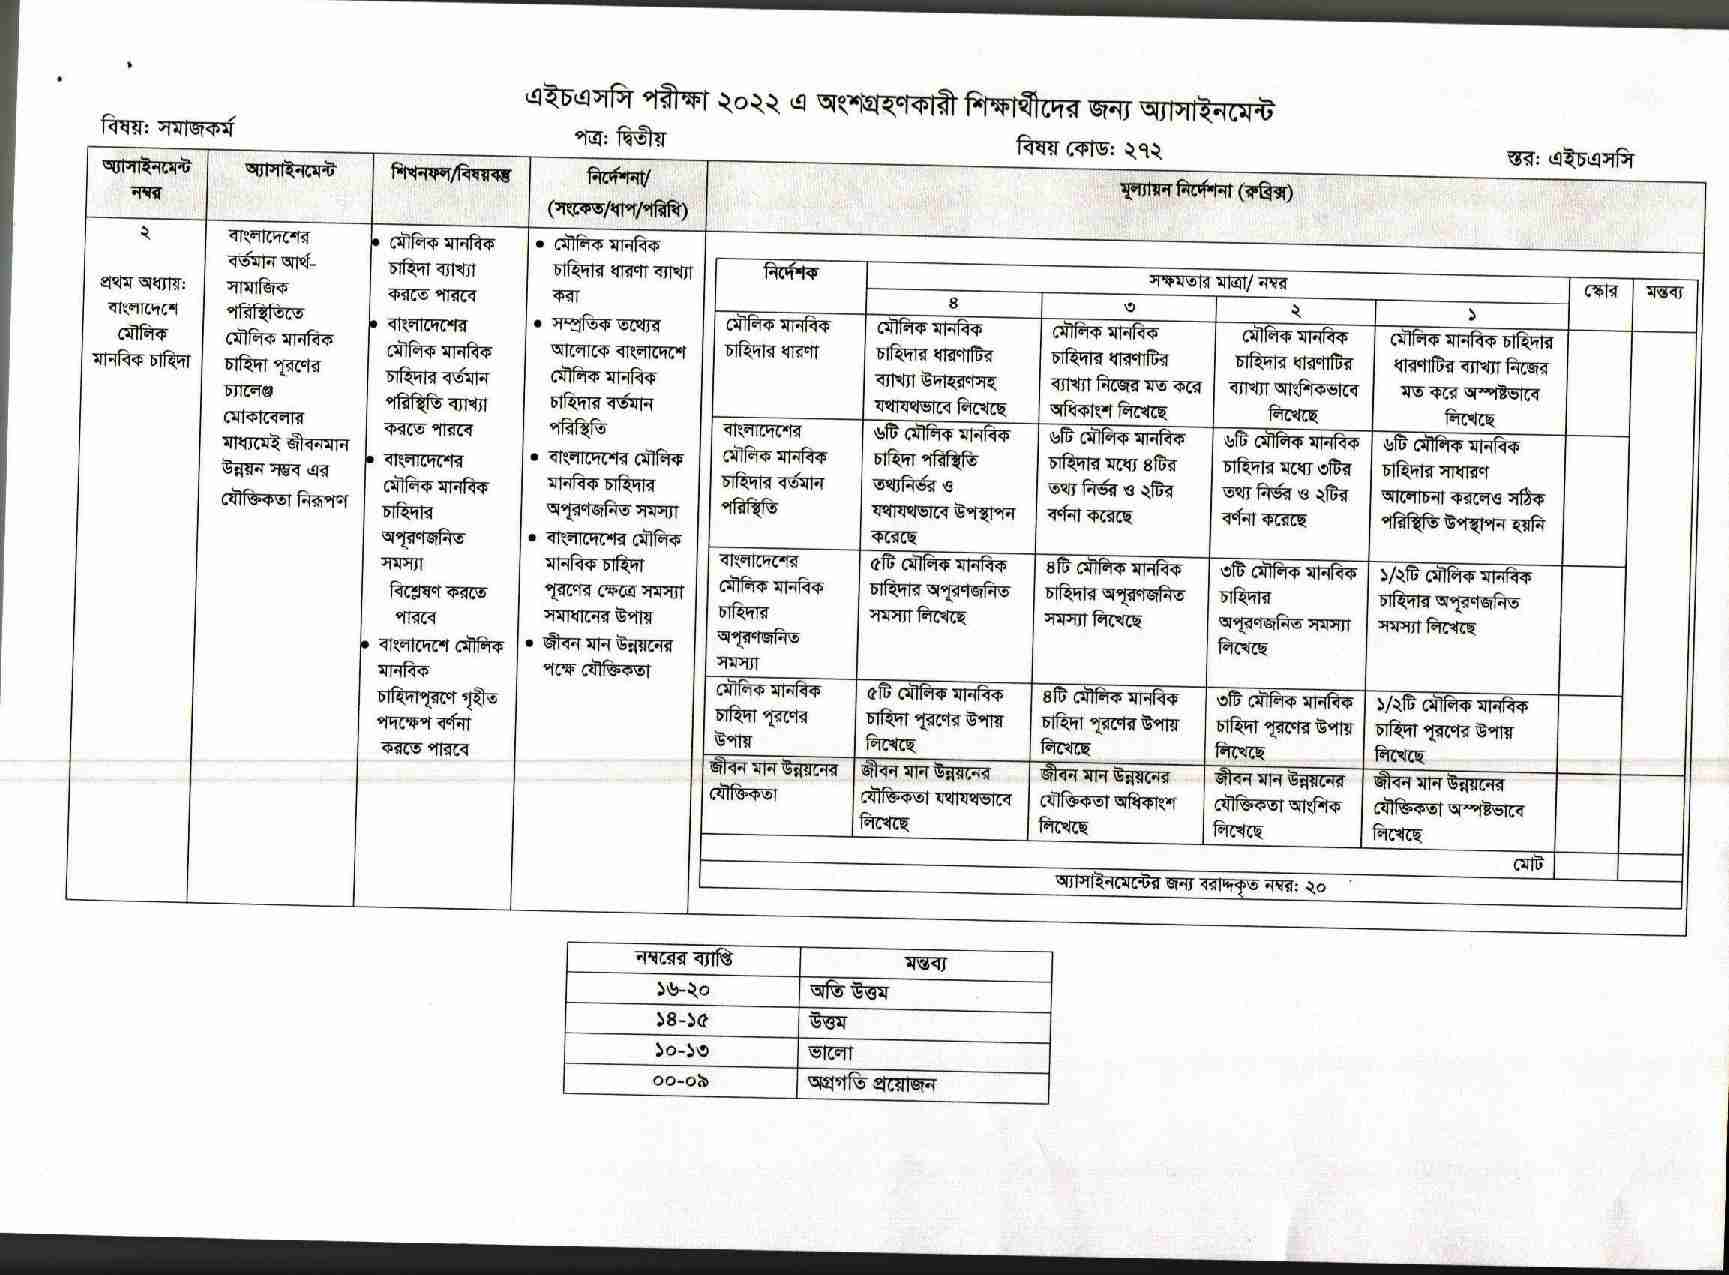 HSC Assignment 2022 8th Week All Subjects